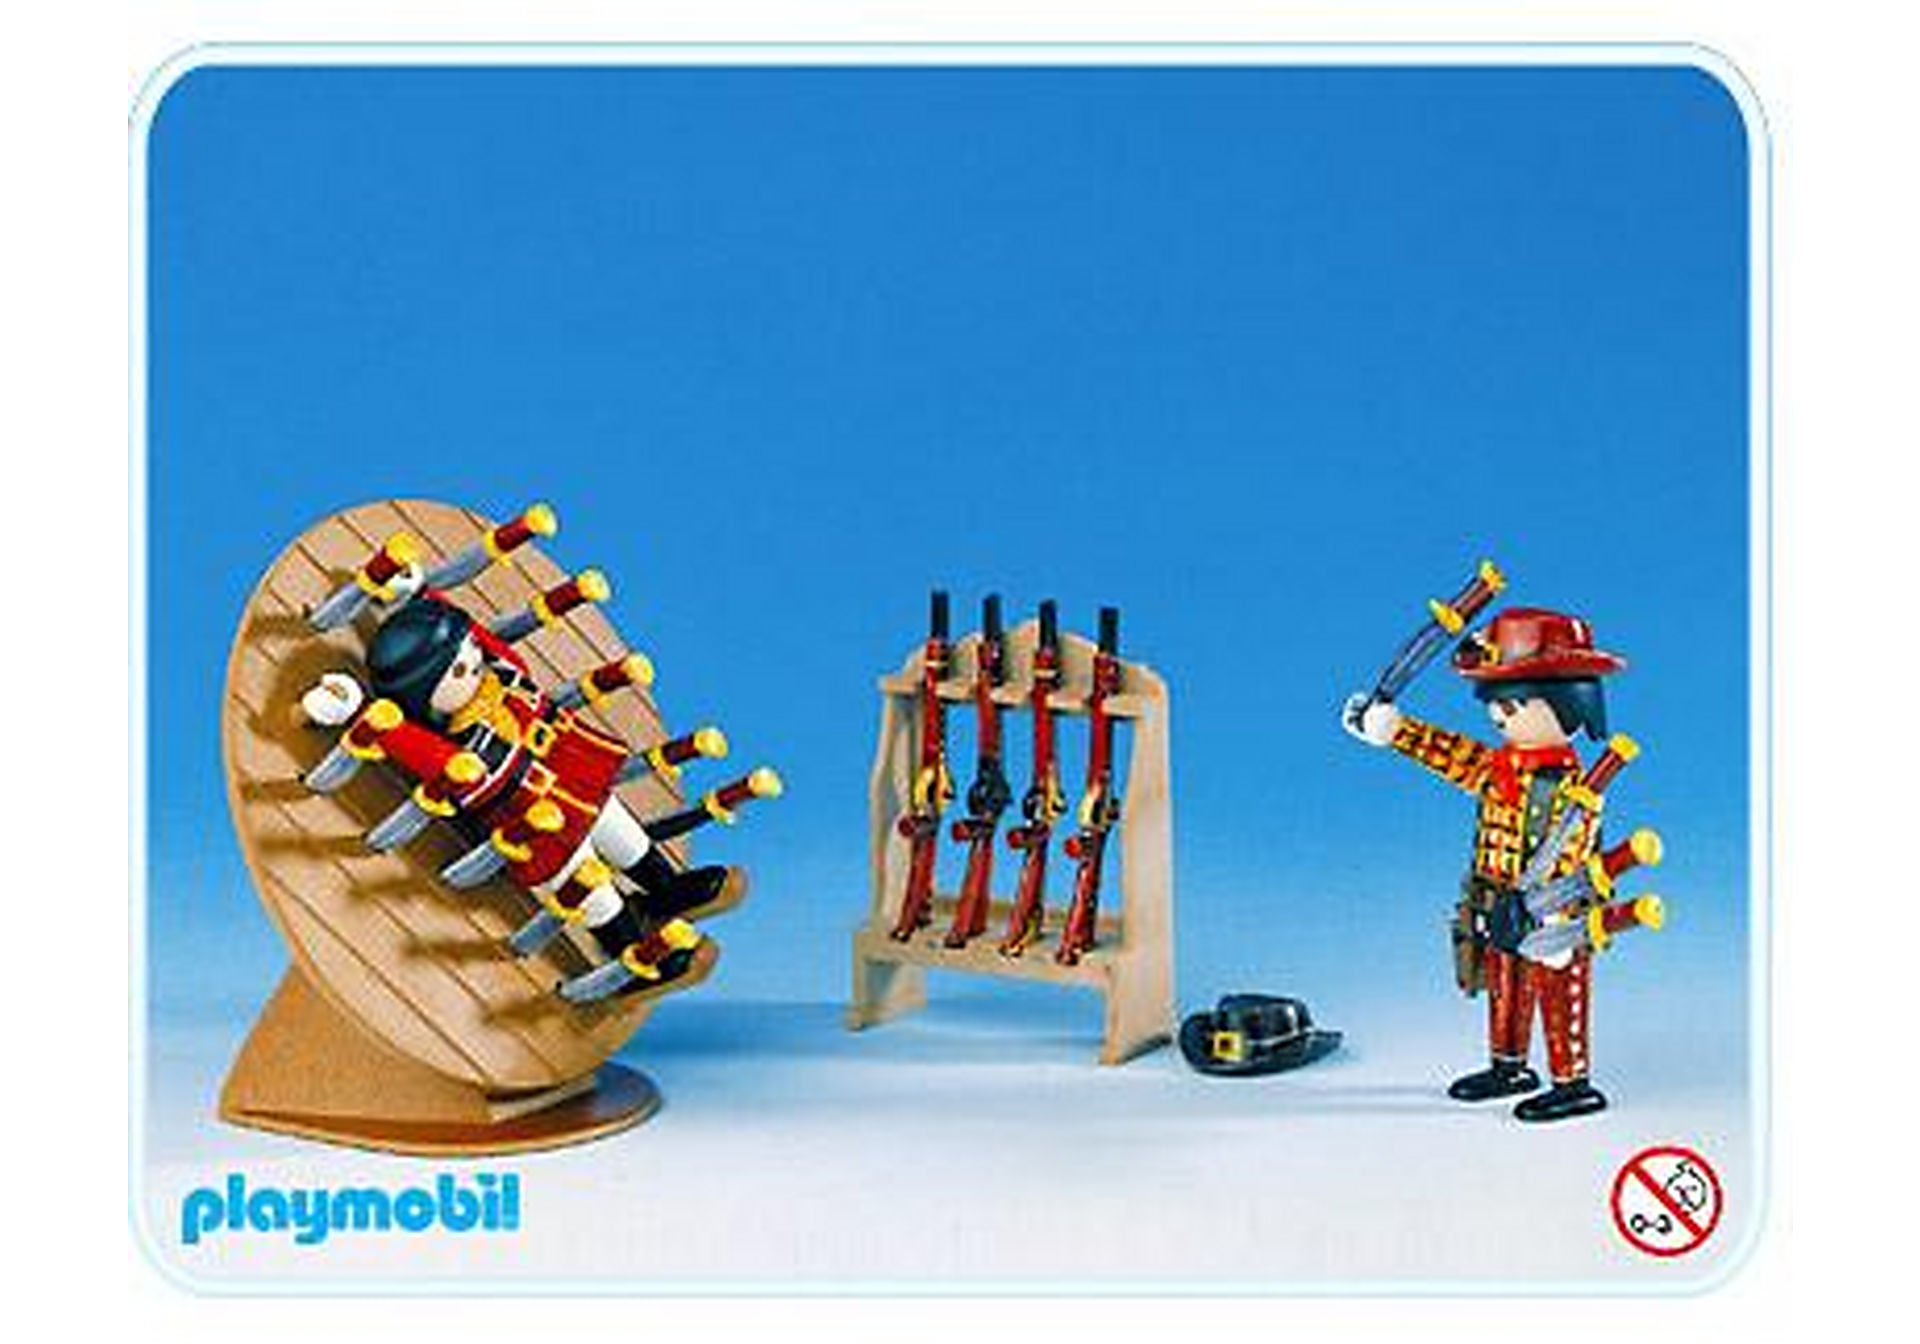 http://media.playmobil.com/i/playmobil/3640-A_product_detail/Messerwerfer